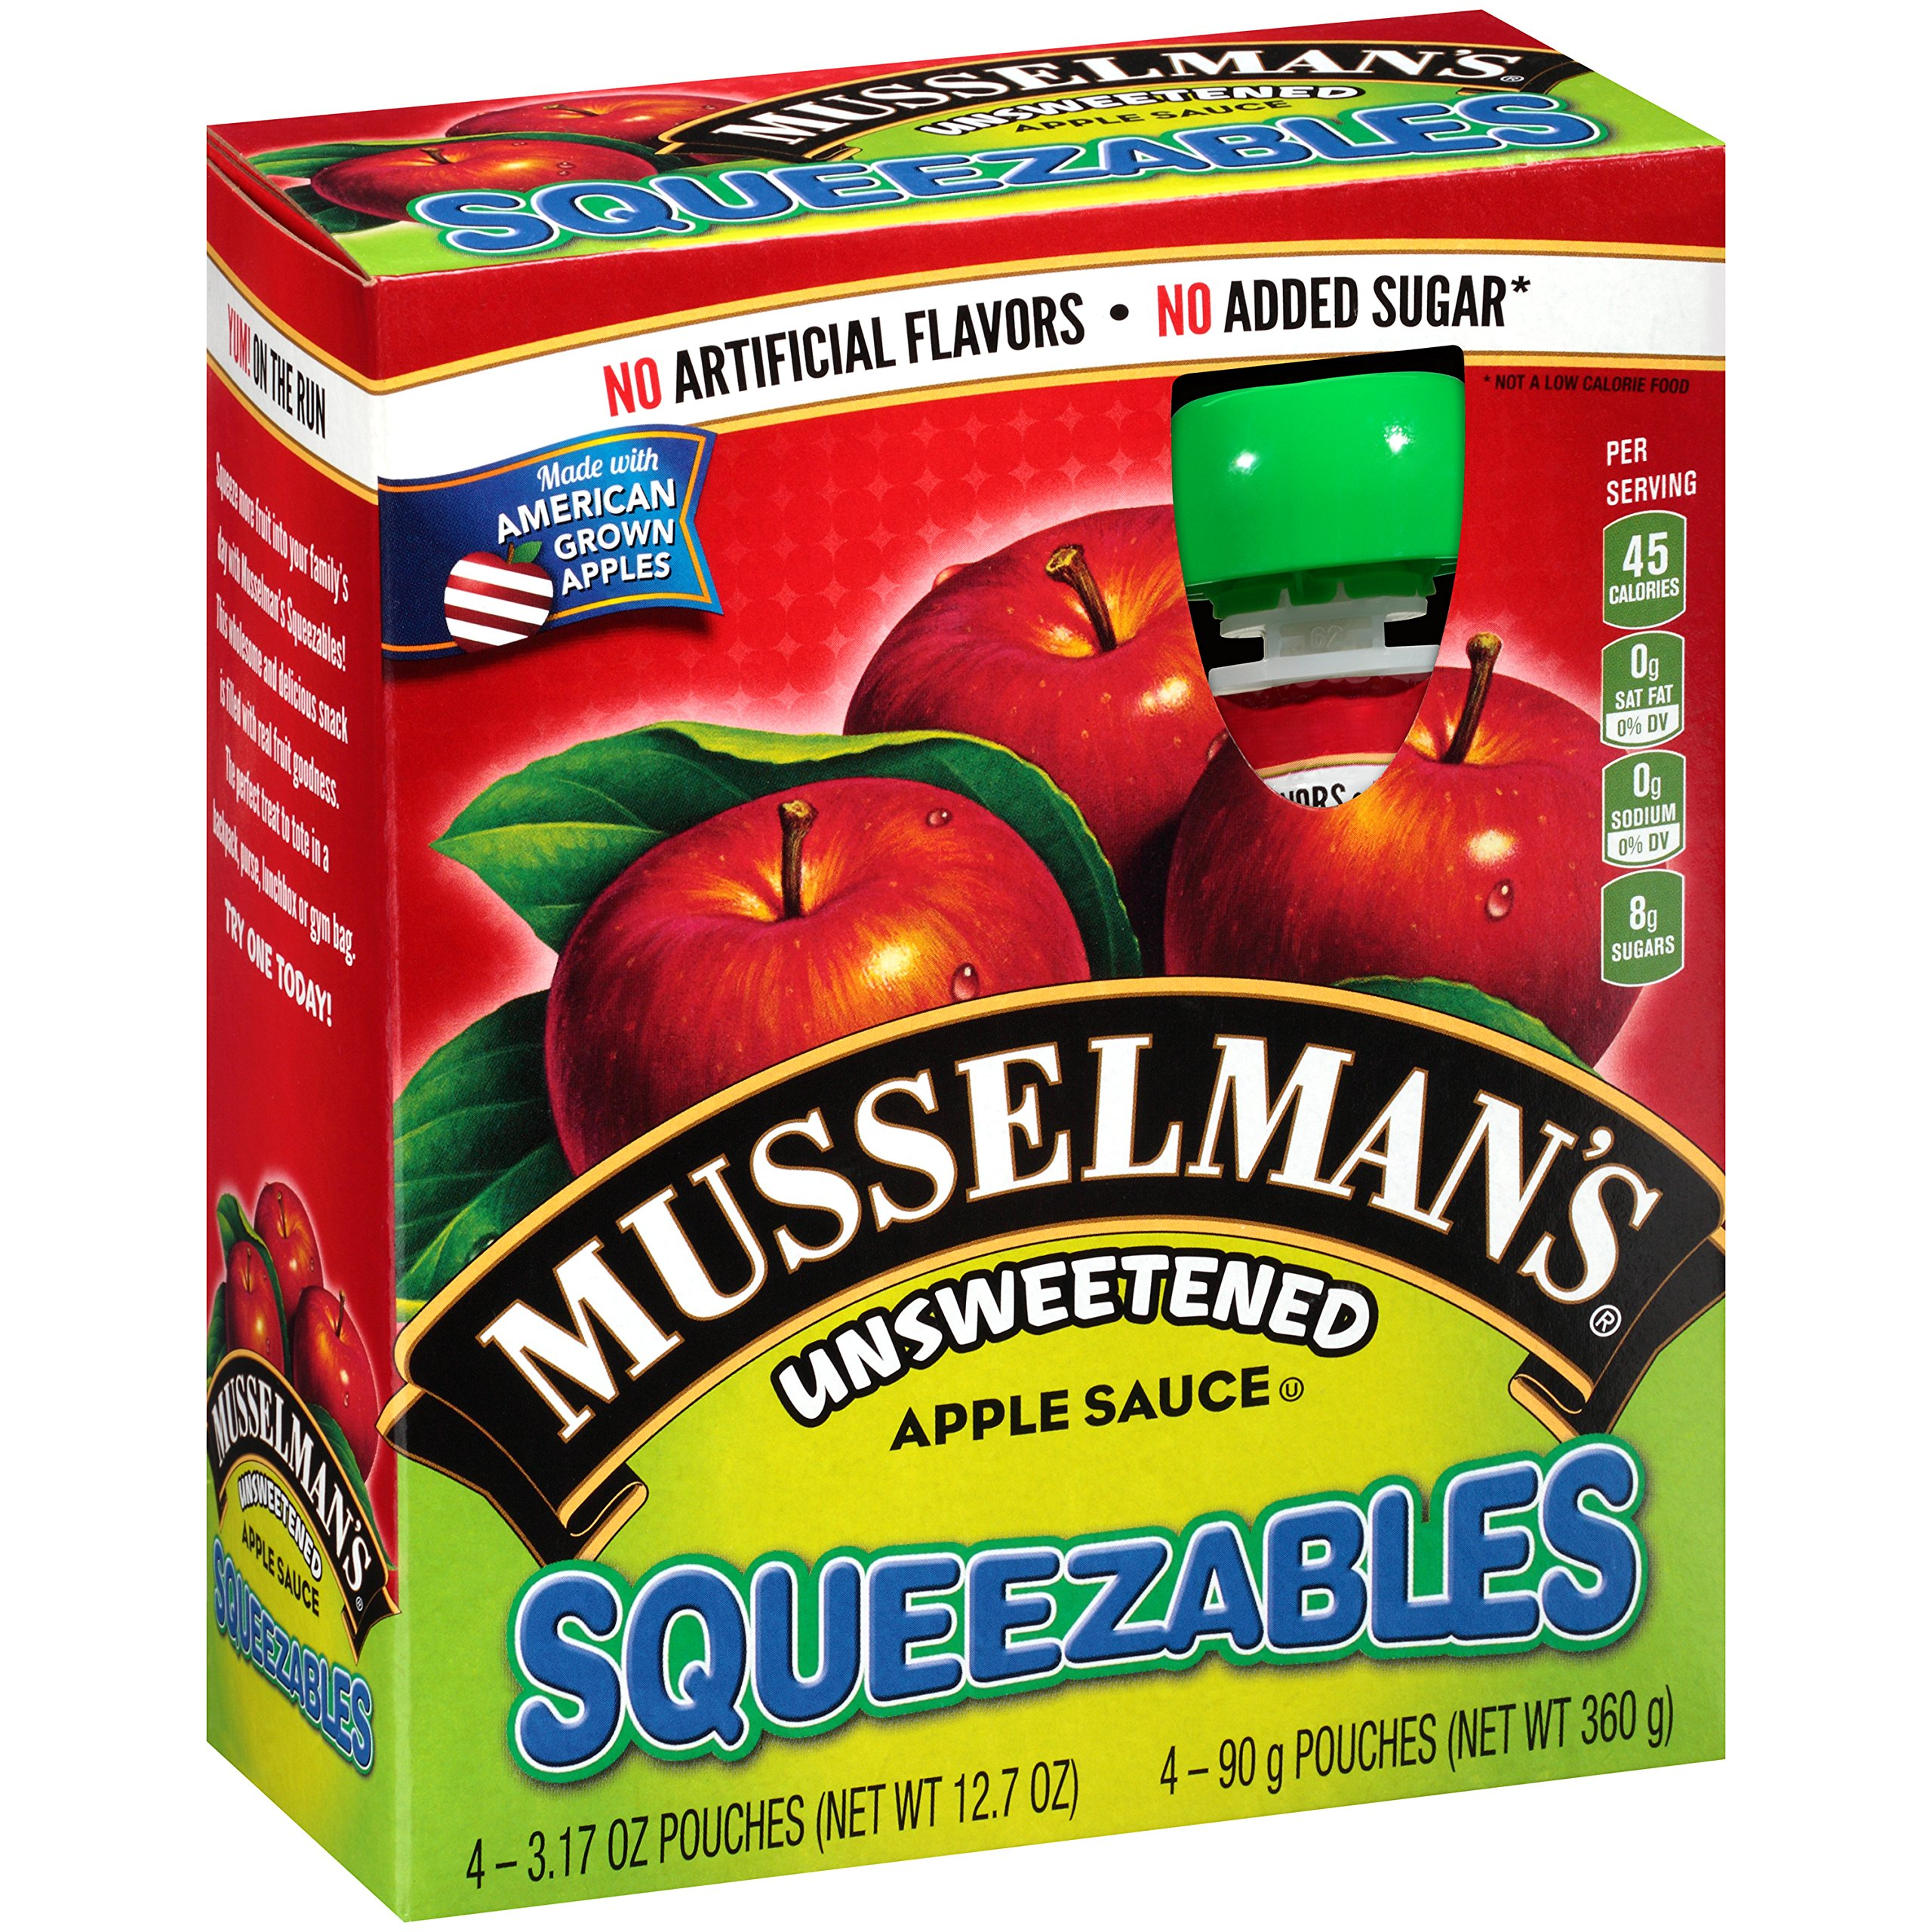 Musselman's Squeezable Unsweetened Apple Sauce Pouches, 3.17 Ounce (Pack of 6) by Musselmans